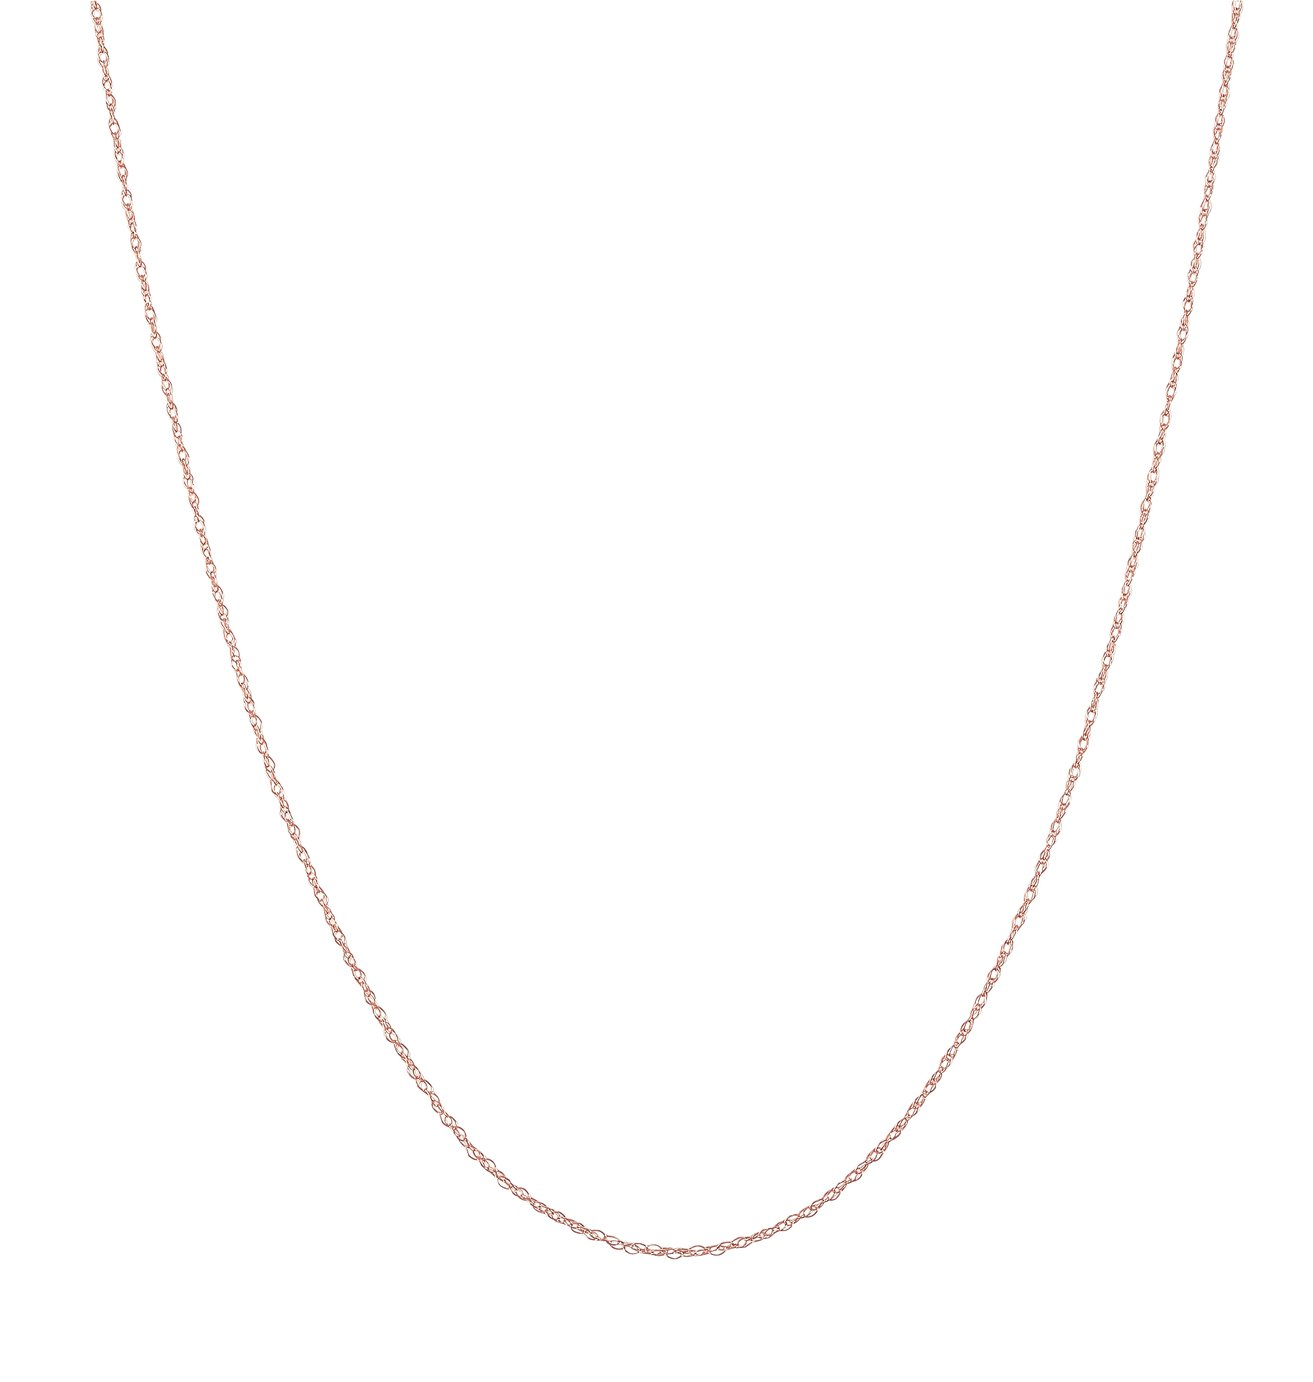 Revere 9ct Rose Gold Prince of Wales Pendant 20inch Necklace